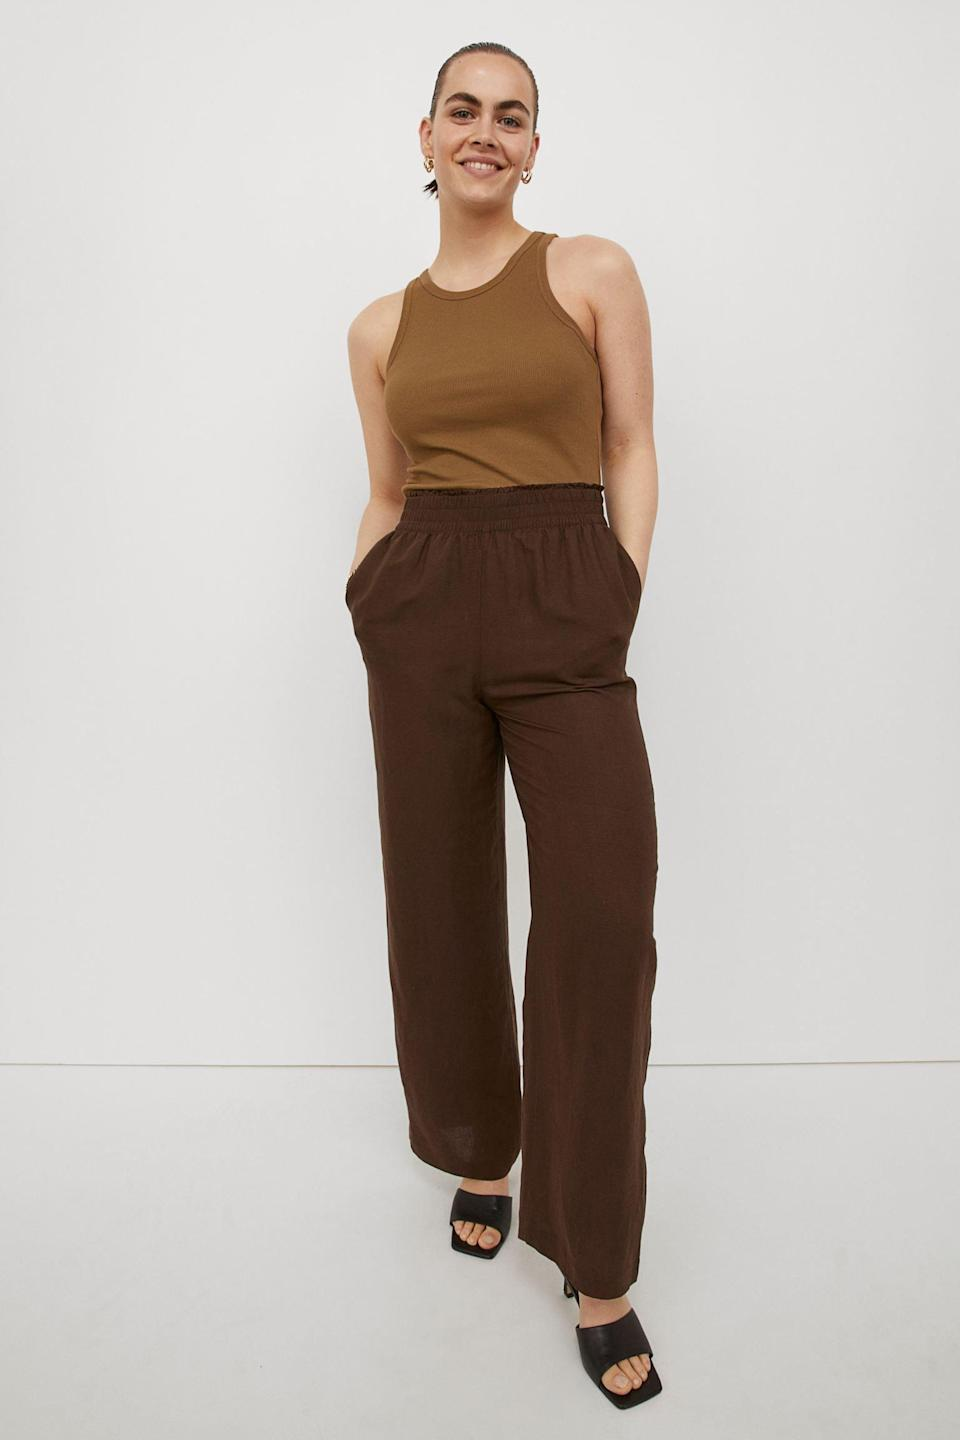 <p>On days when you can't even deal with jeans, these <span>Wide-cut Pants</span> ($21, originally $25) will keep you at ease. They are just loose enough to make you comfortable, yet the silhouette is still polished and put-together.</p>